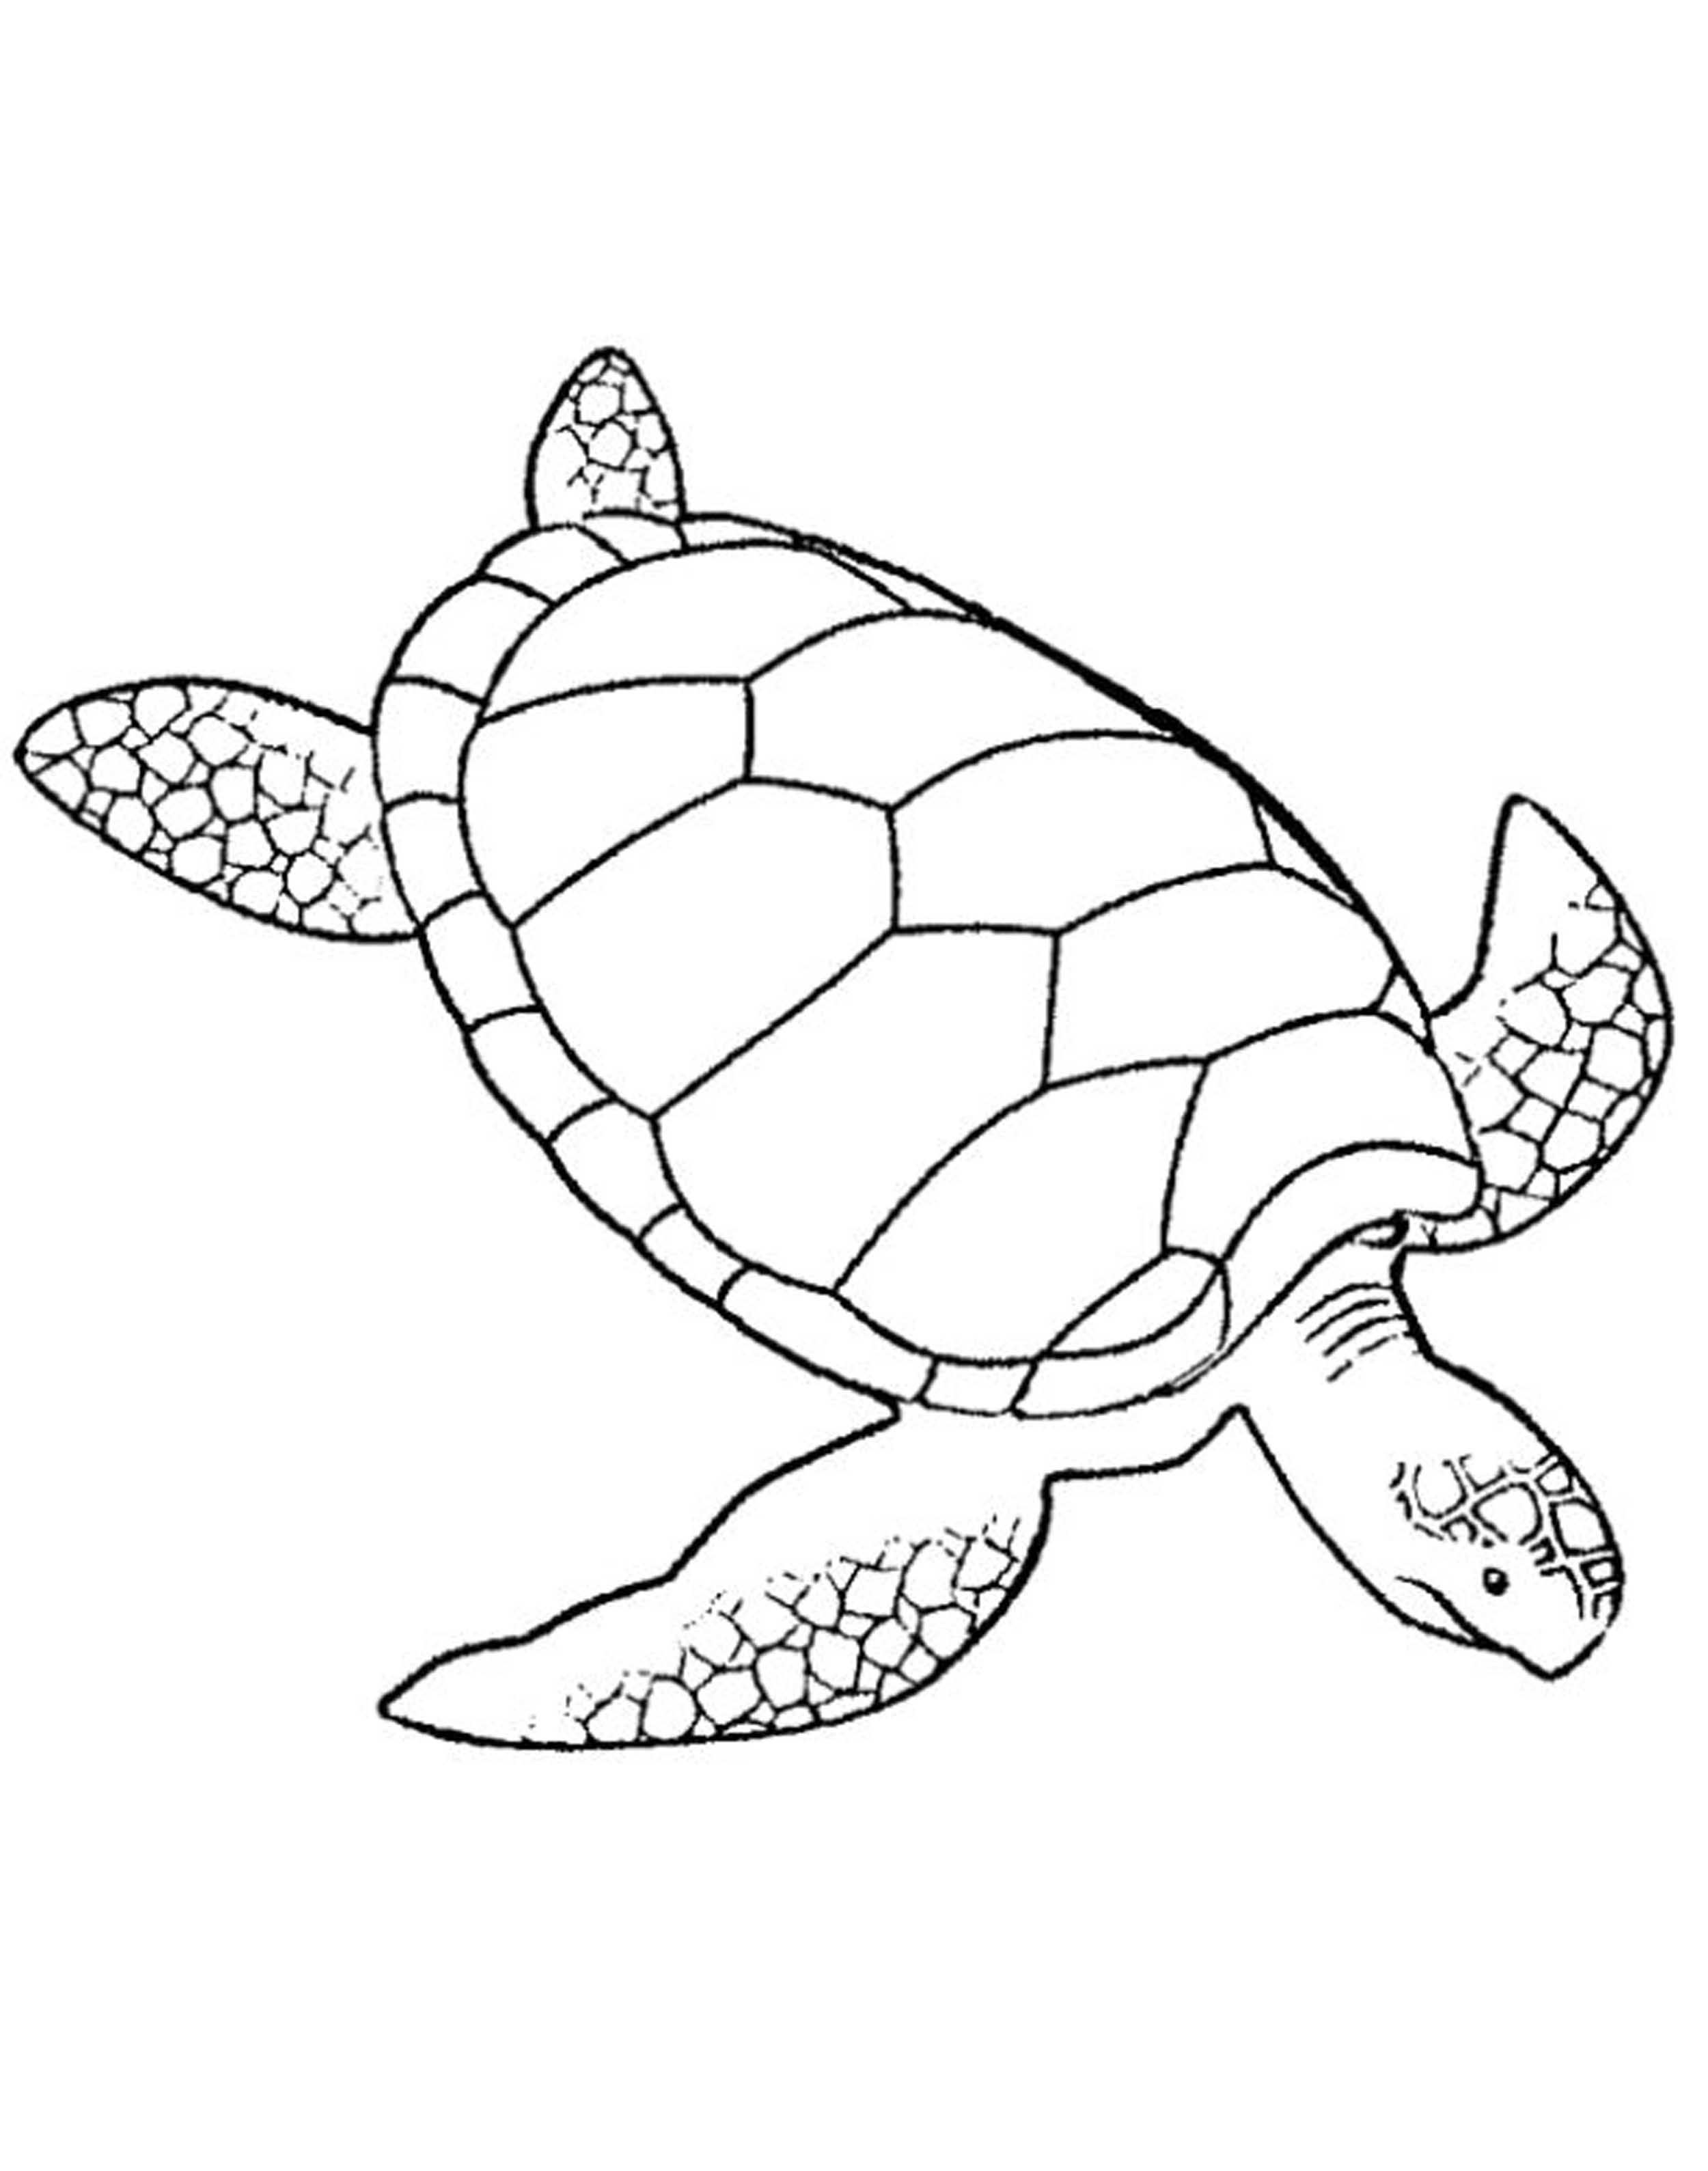 turtles coloring page coloring pages turtles free printable coloring pages page turtles coloring